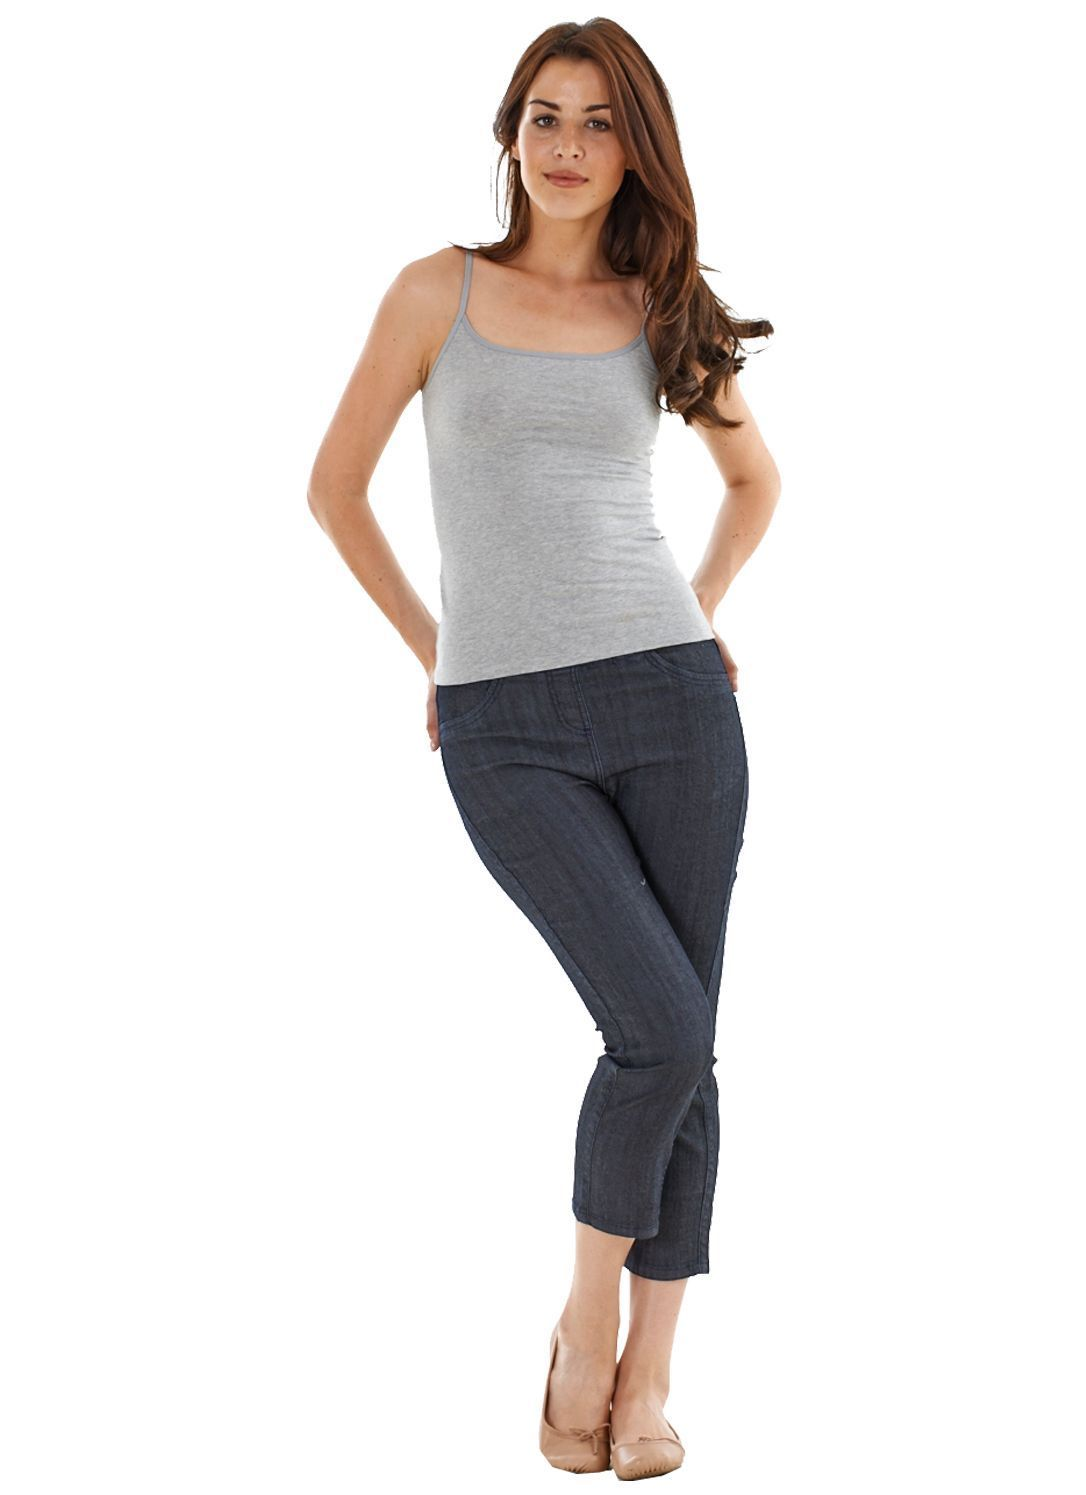 Women's Jeans from fluctuatin.gq There's nothing like discovering that perfect pair of jeans. Whether you're drawn to clean, dark-wash skinnies or relaxed-fit boyfriend jeans, Amazon offers the latest colors and cuts trending in women's denim as well as the classics that will always be in style.